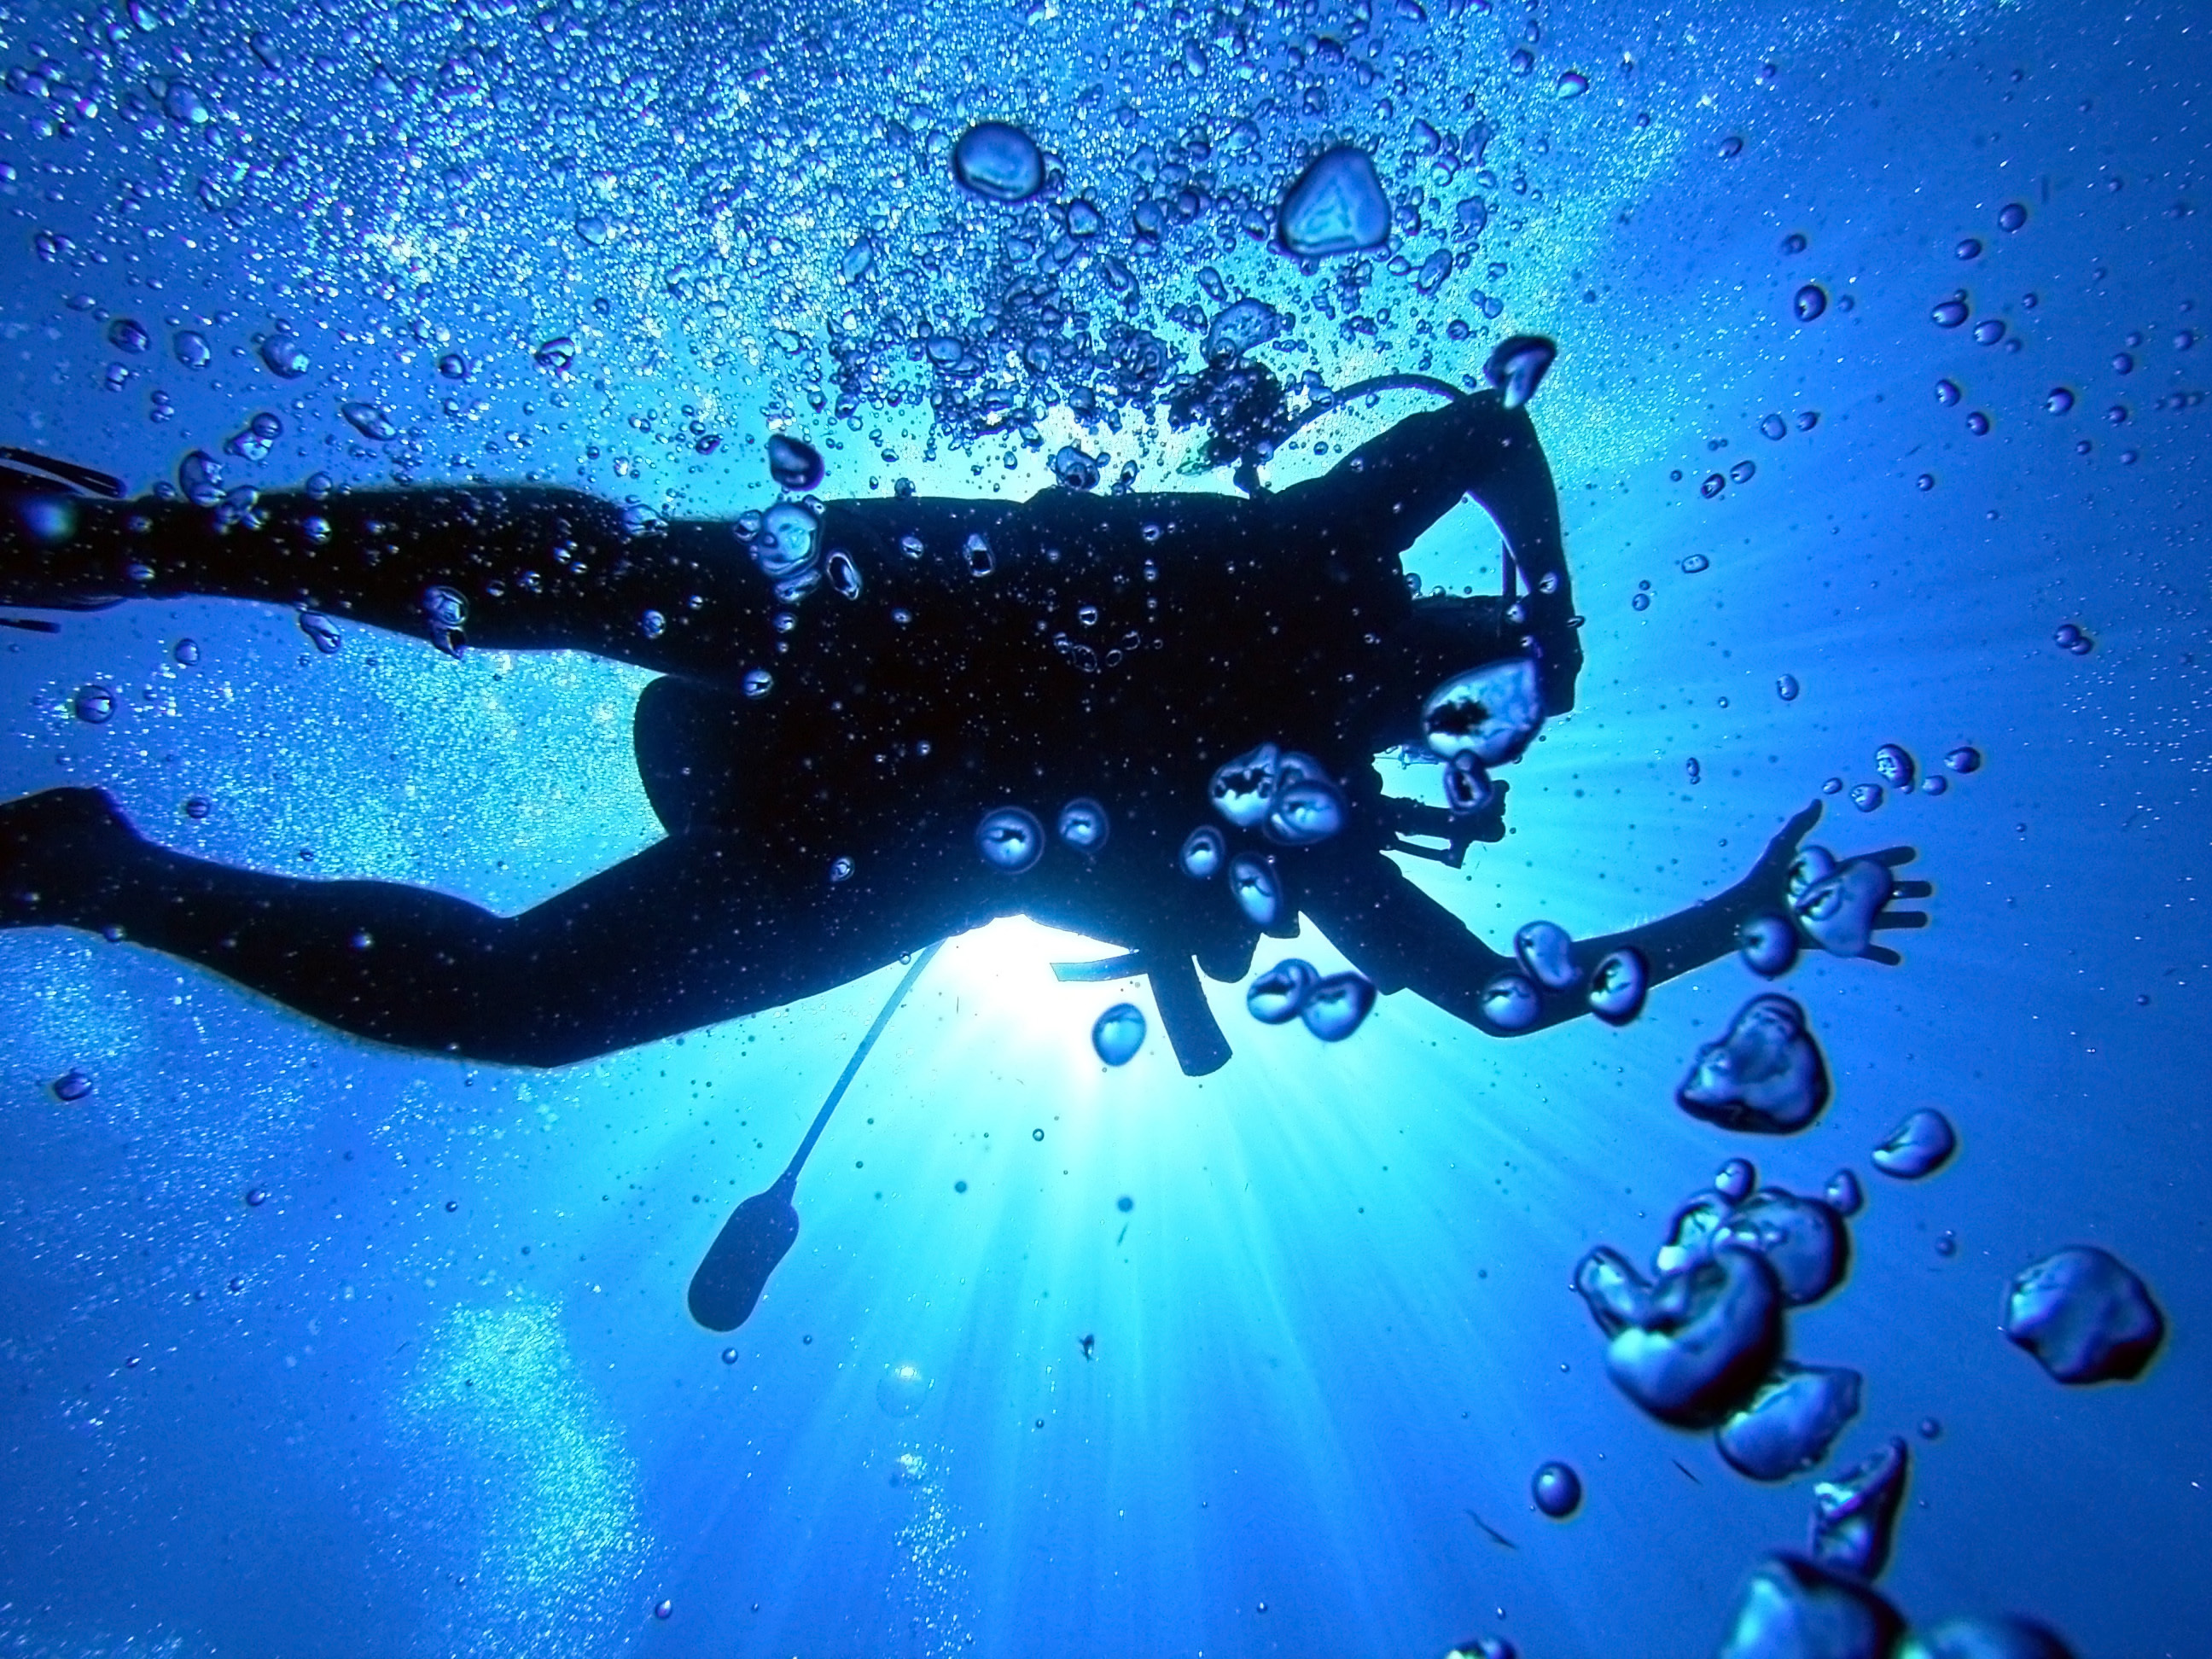 diving full hd wallpaper and background image | 2592x1944 | id:165146